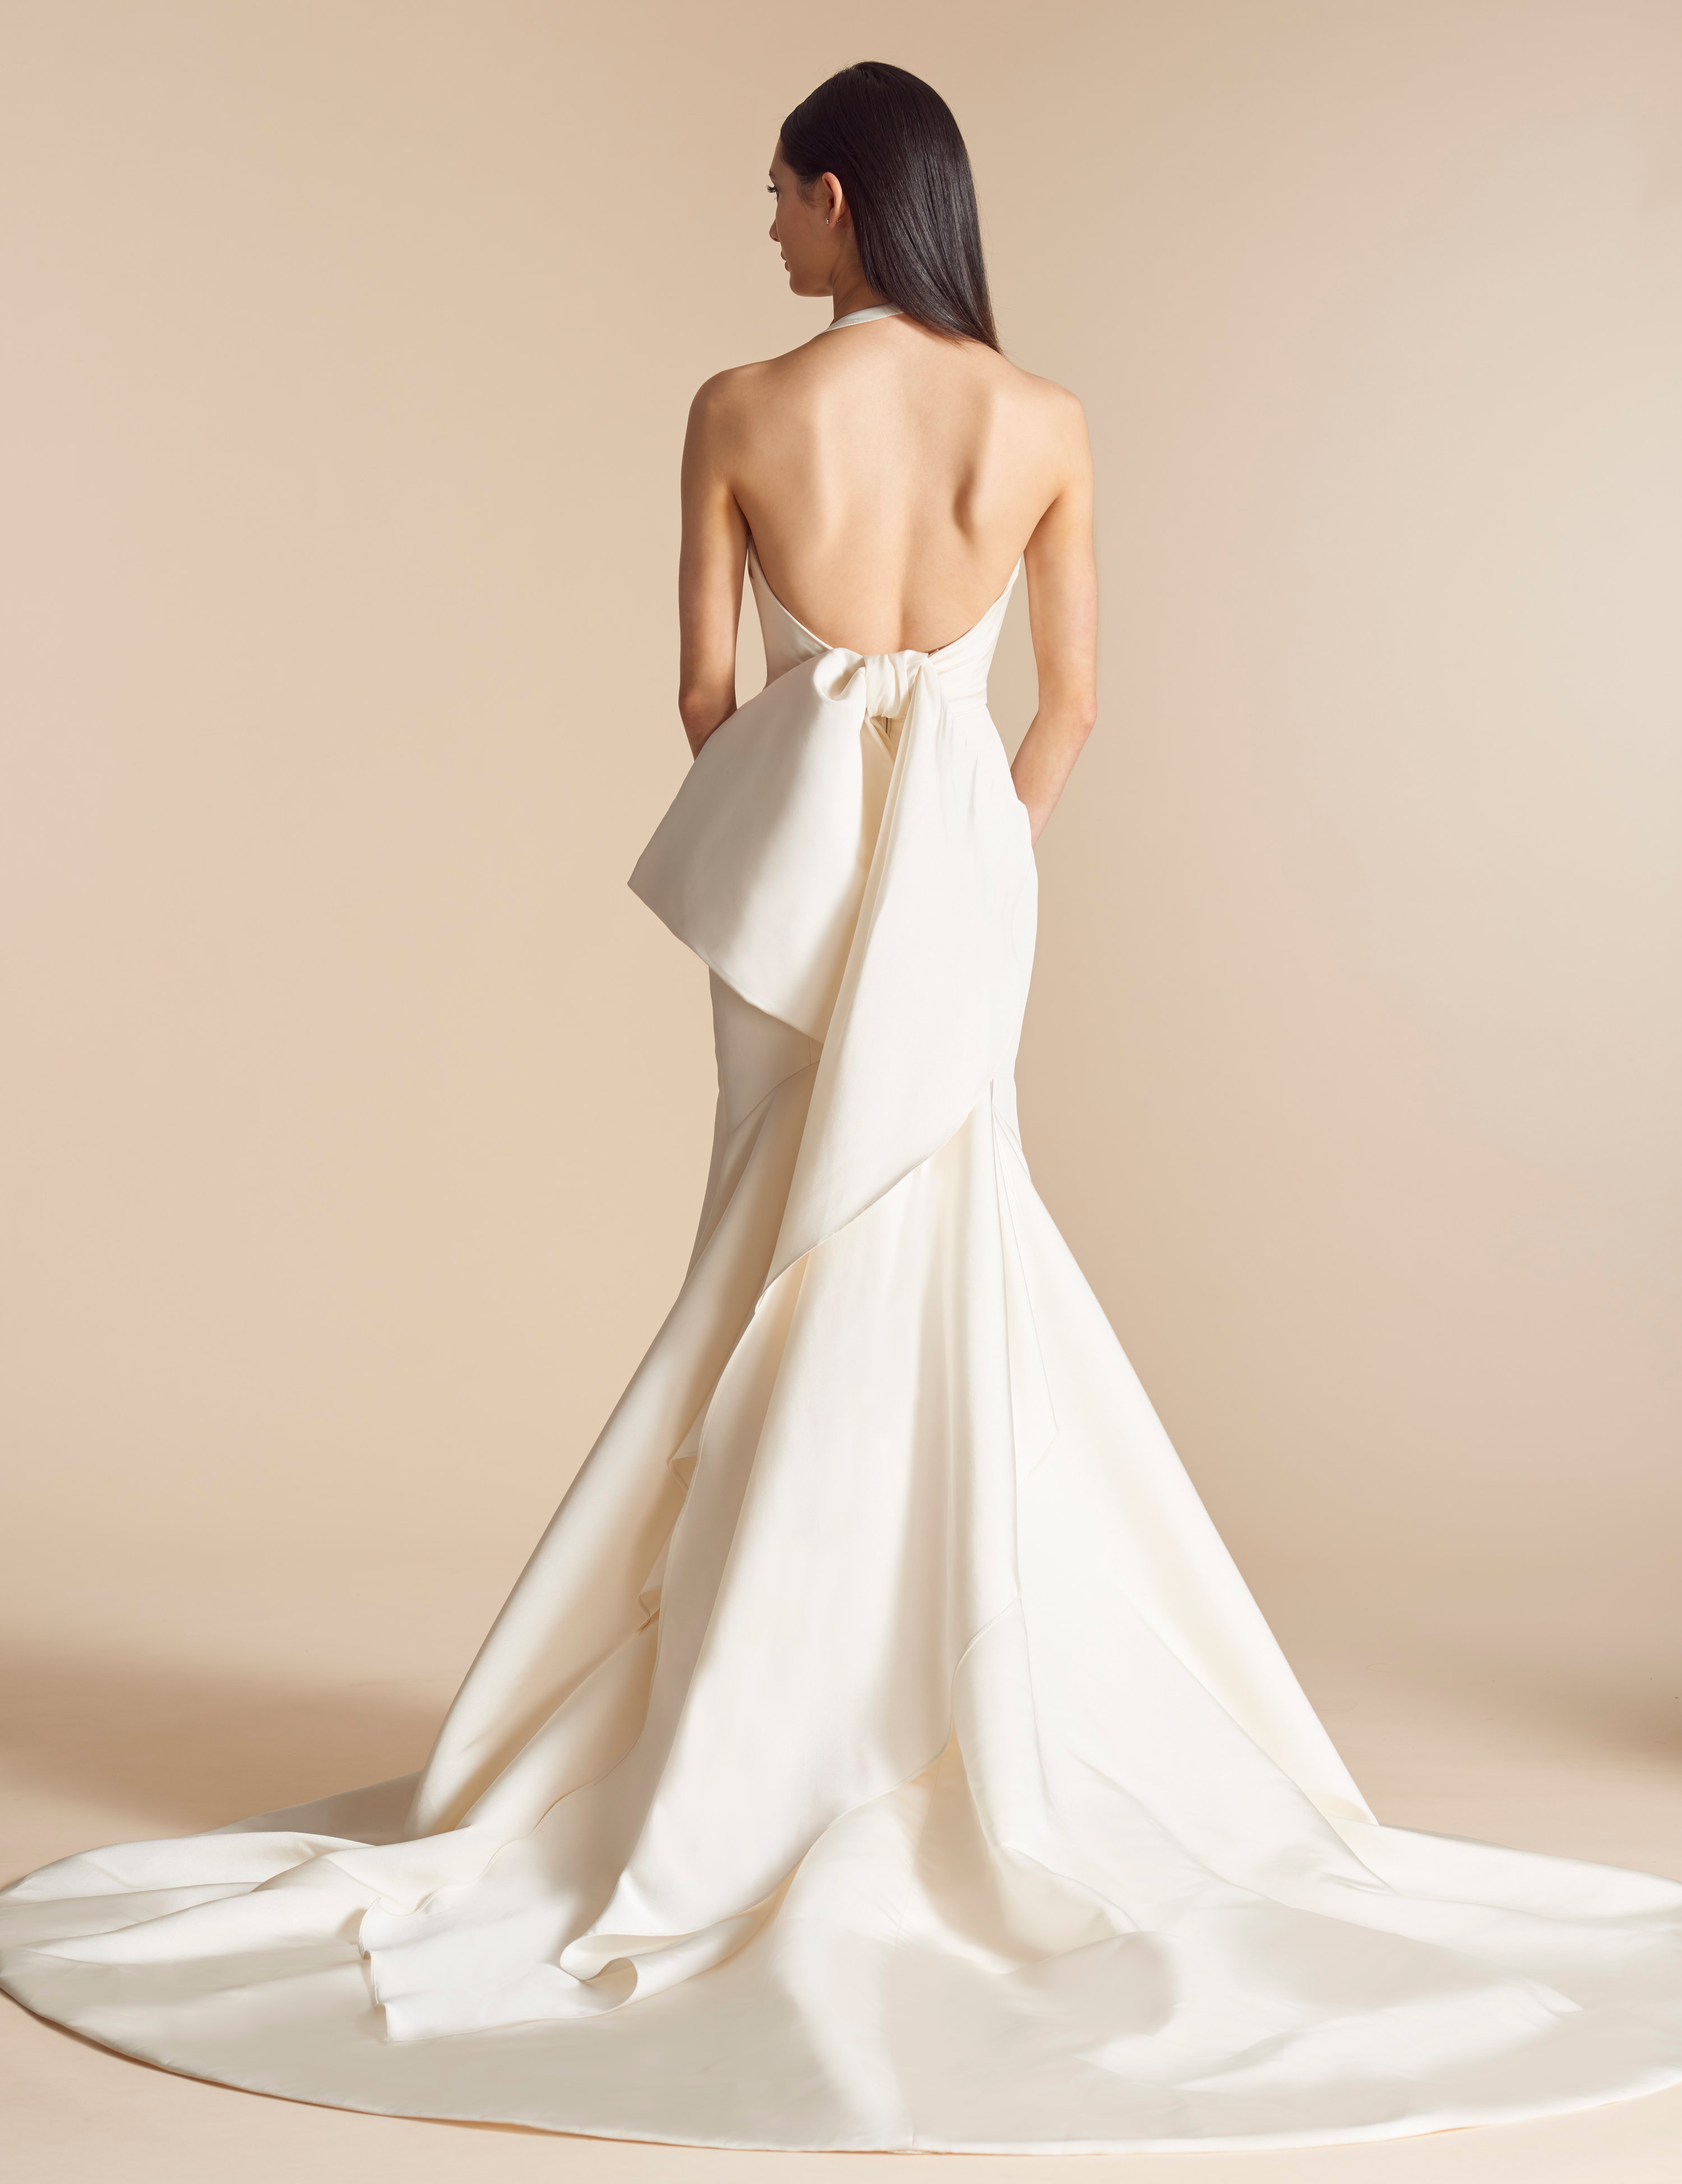 Bridal Gowns and Wedding Dresses by JLM Couture - Style 4803 Kingsland